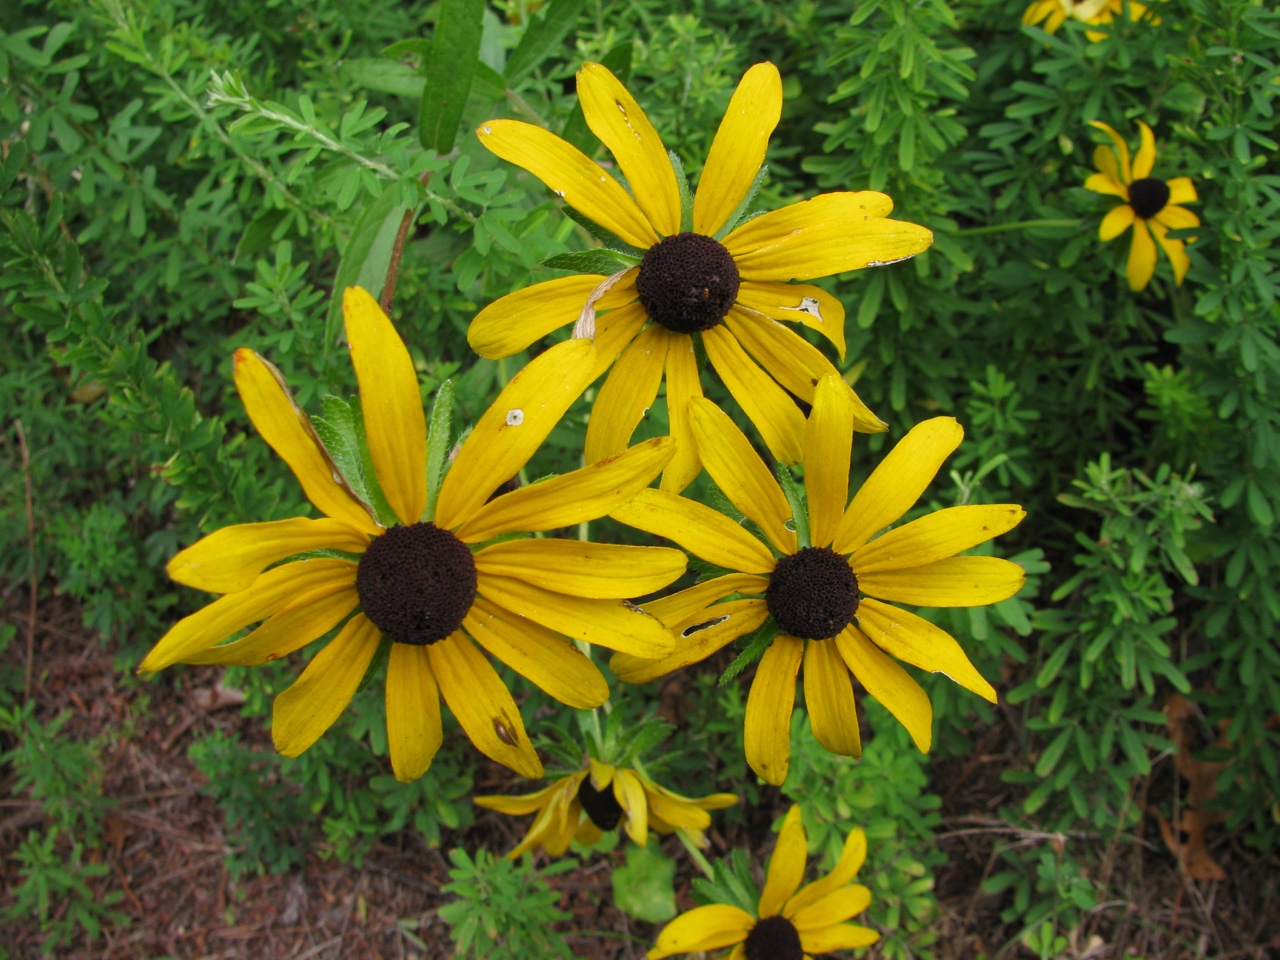 The Scientific Name is Rudbeckia hirta. You will likely hear them called Black-eyed Susan, Black-eyed Coneflower. This picture shows the Beautiful golden-yellow rays with a dark  purple-brown cone-shaped disk of Rudbeckia hirta